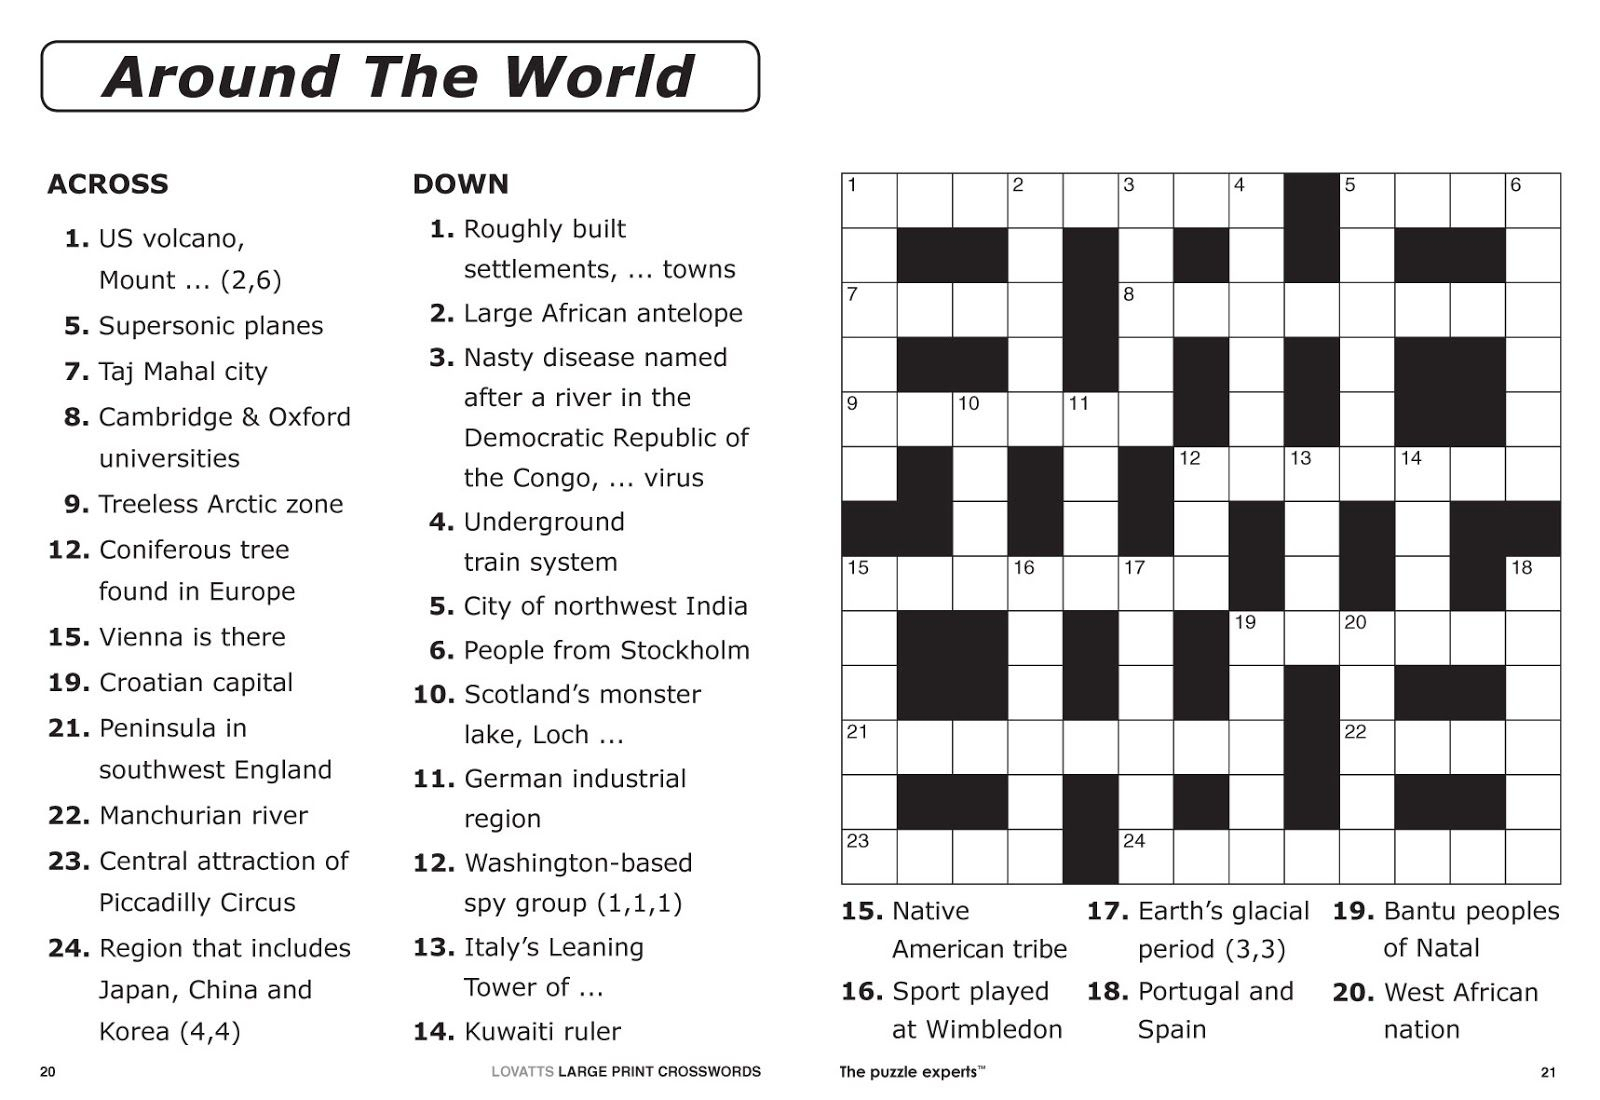 Free Printable Large Print Crossword Puzzles | M3U8 - Printable Crosswords For 5 Year Olds